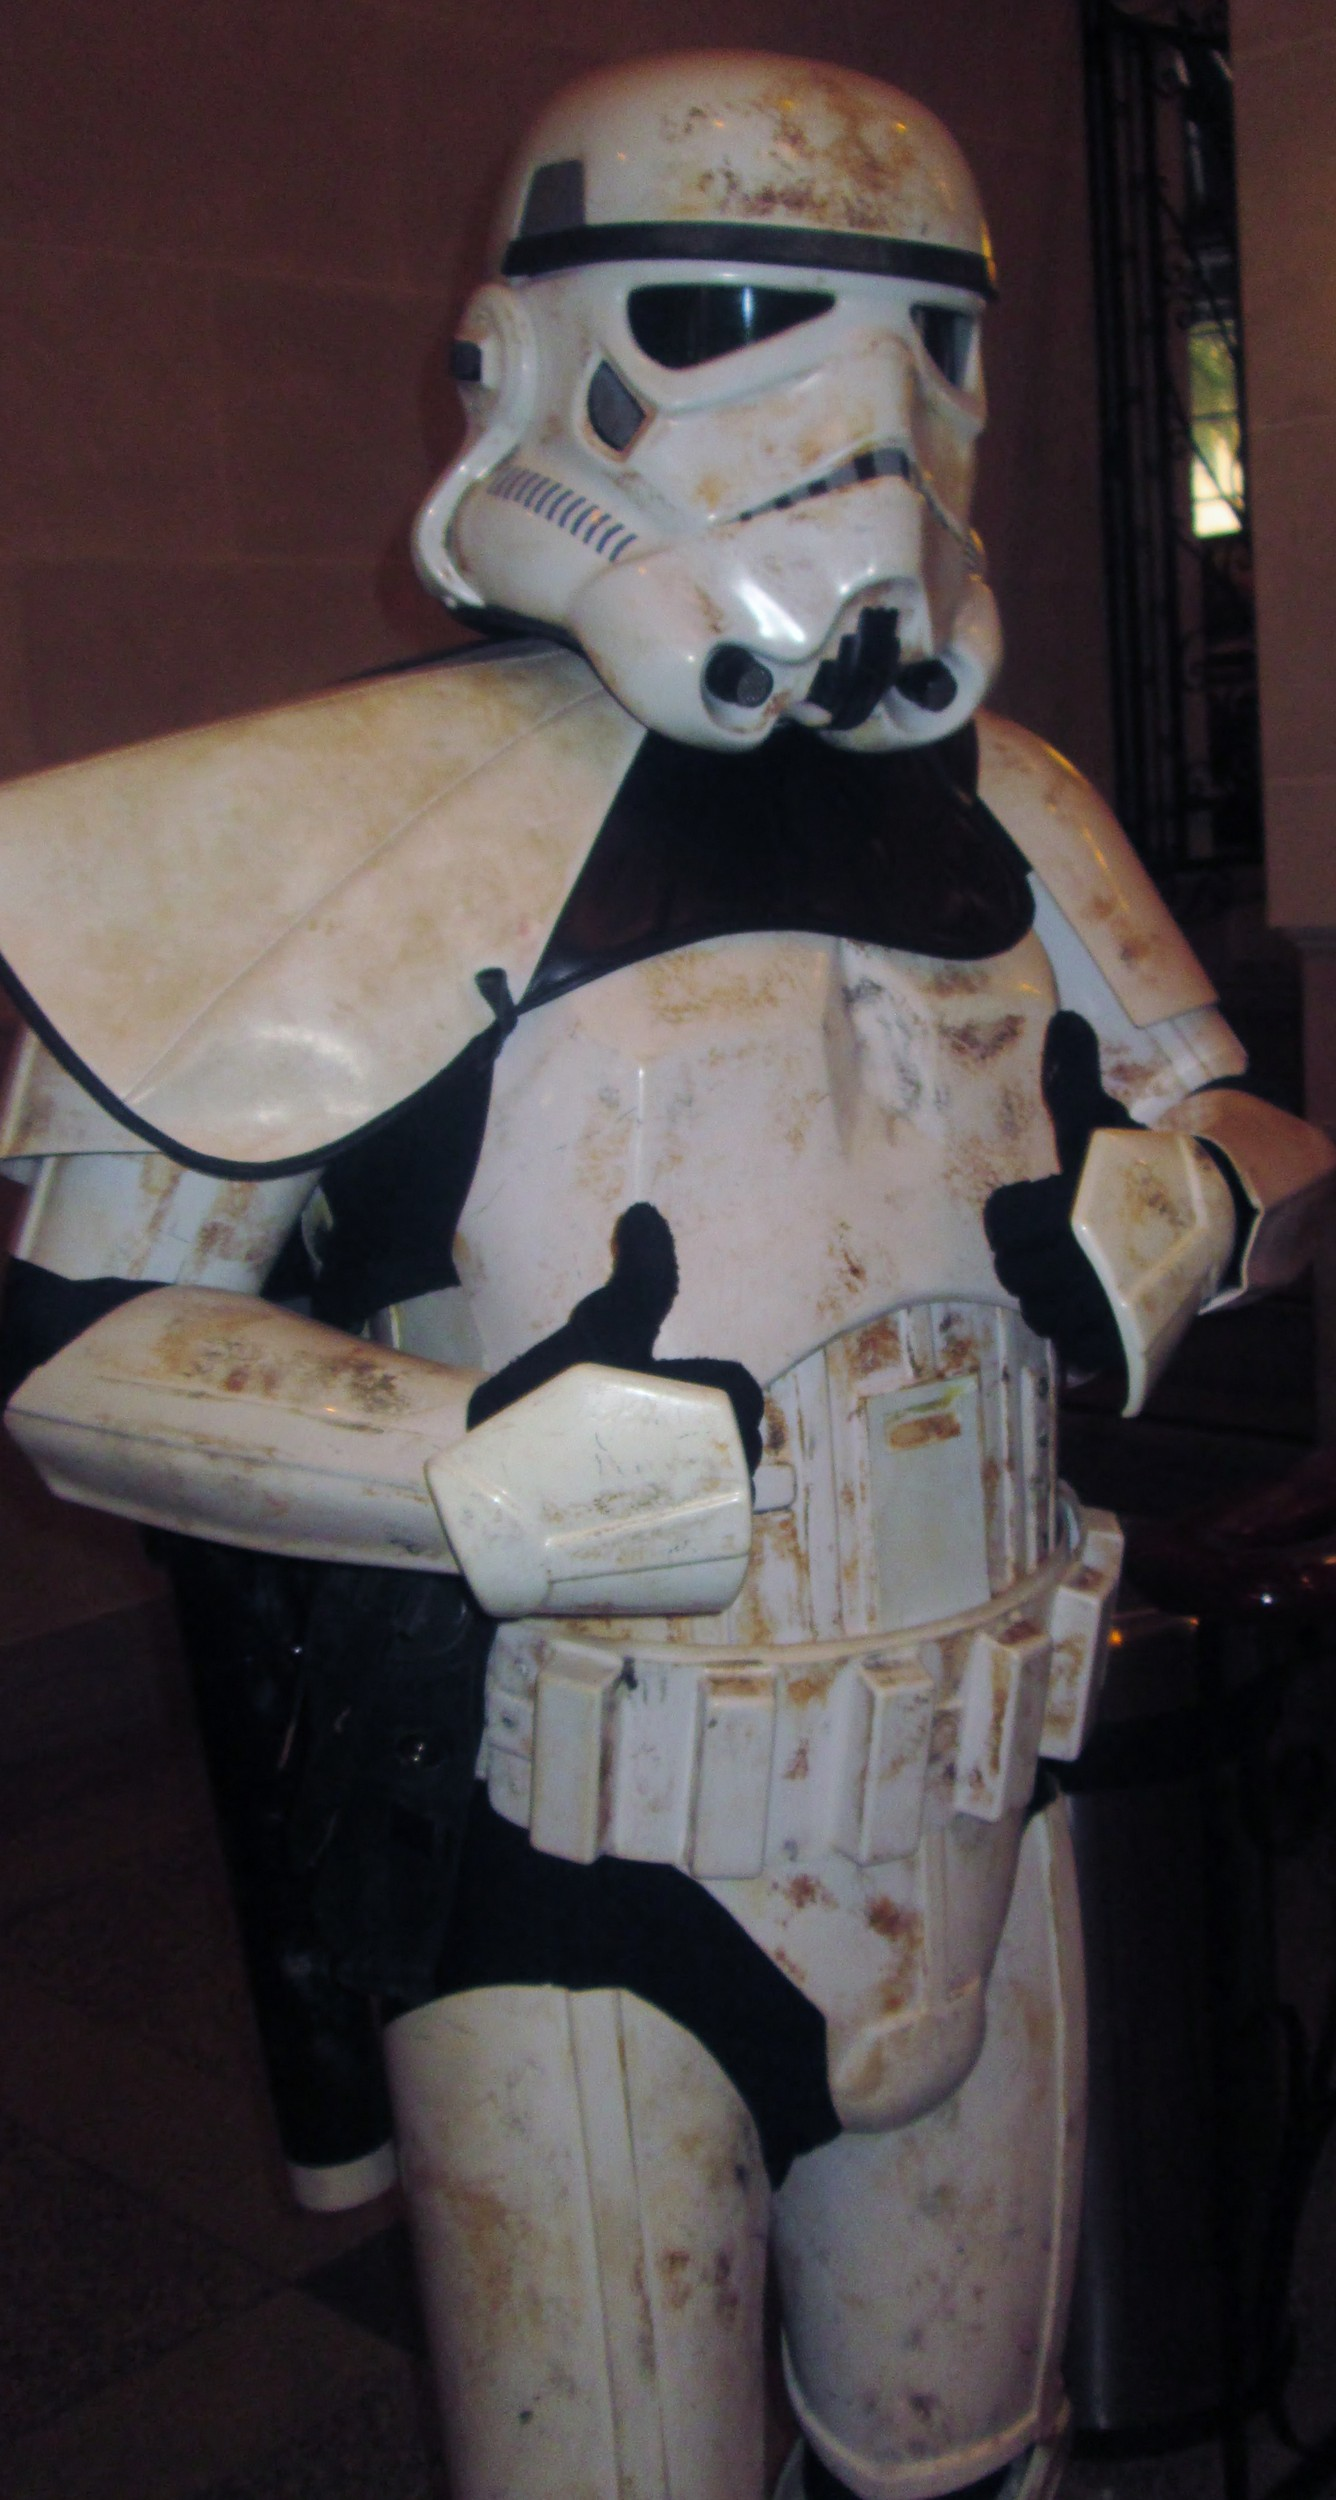 Michael Boyce as a Stormtrooper